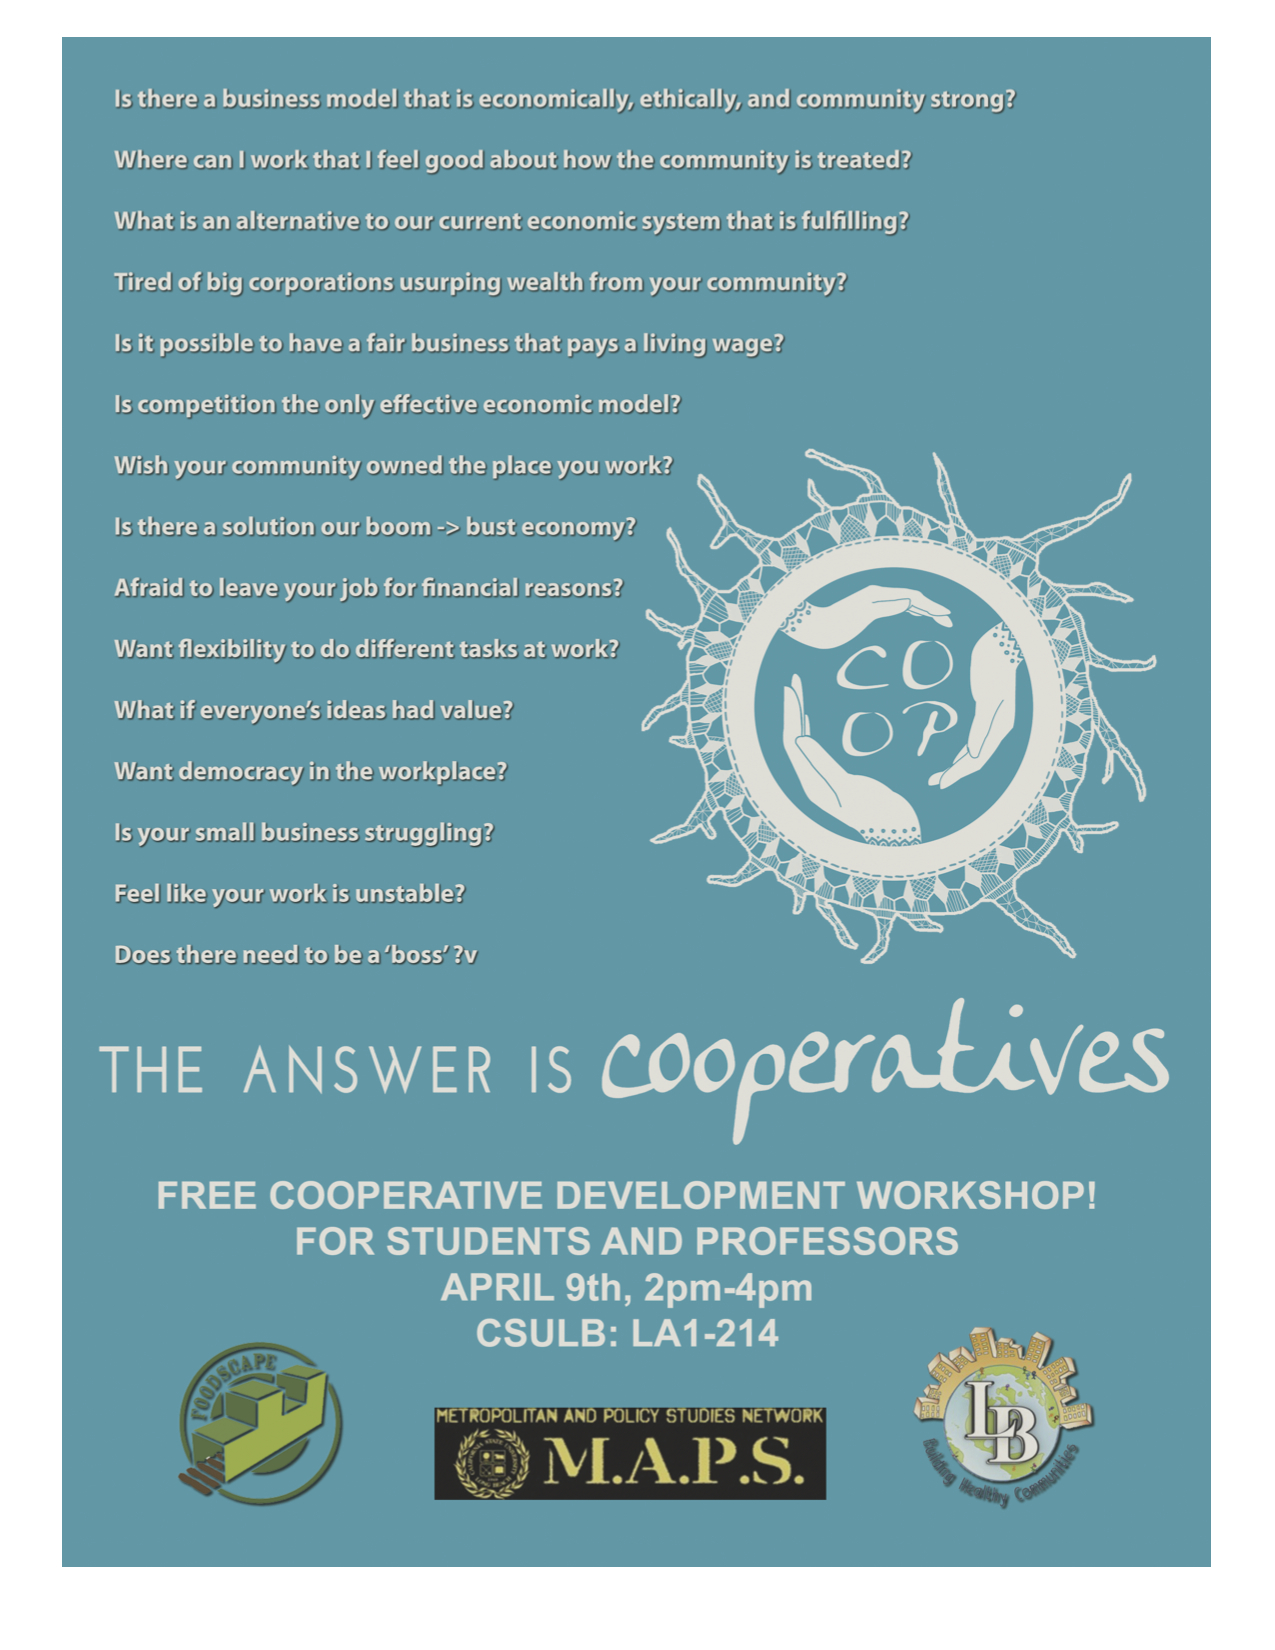 Coop_Flyer_CSULB_2014_3_24_copy.jpg